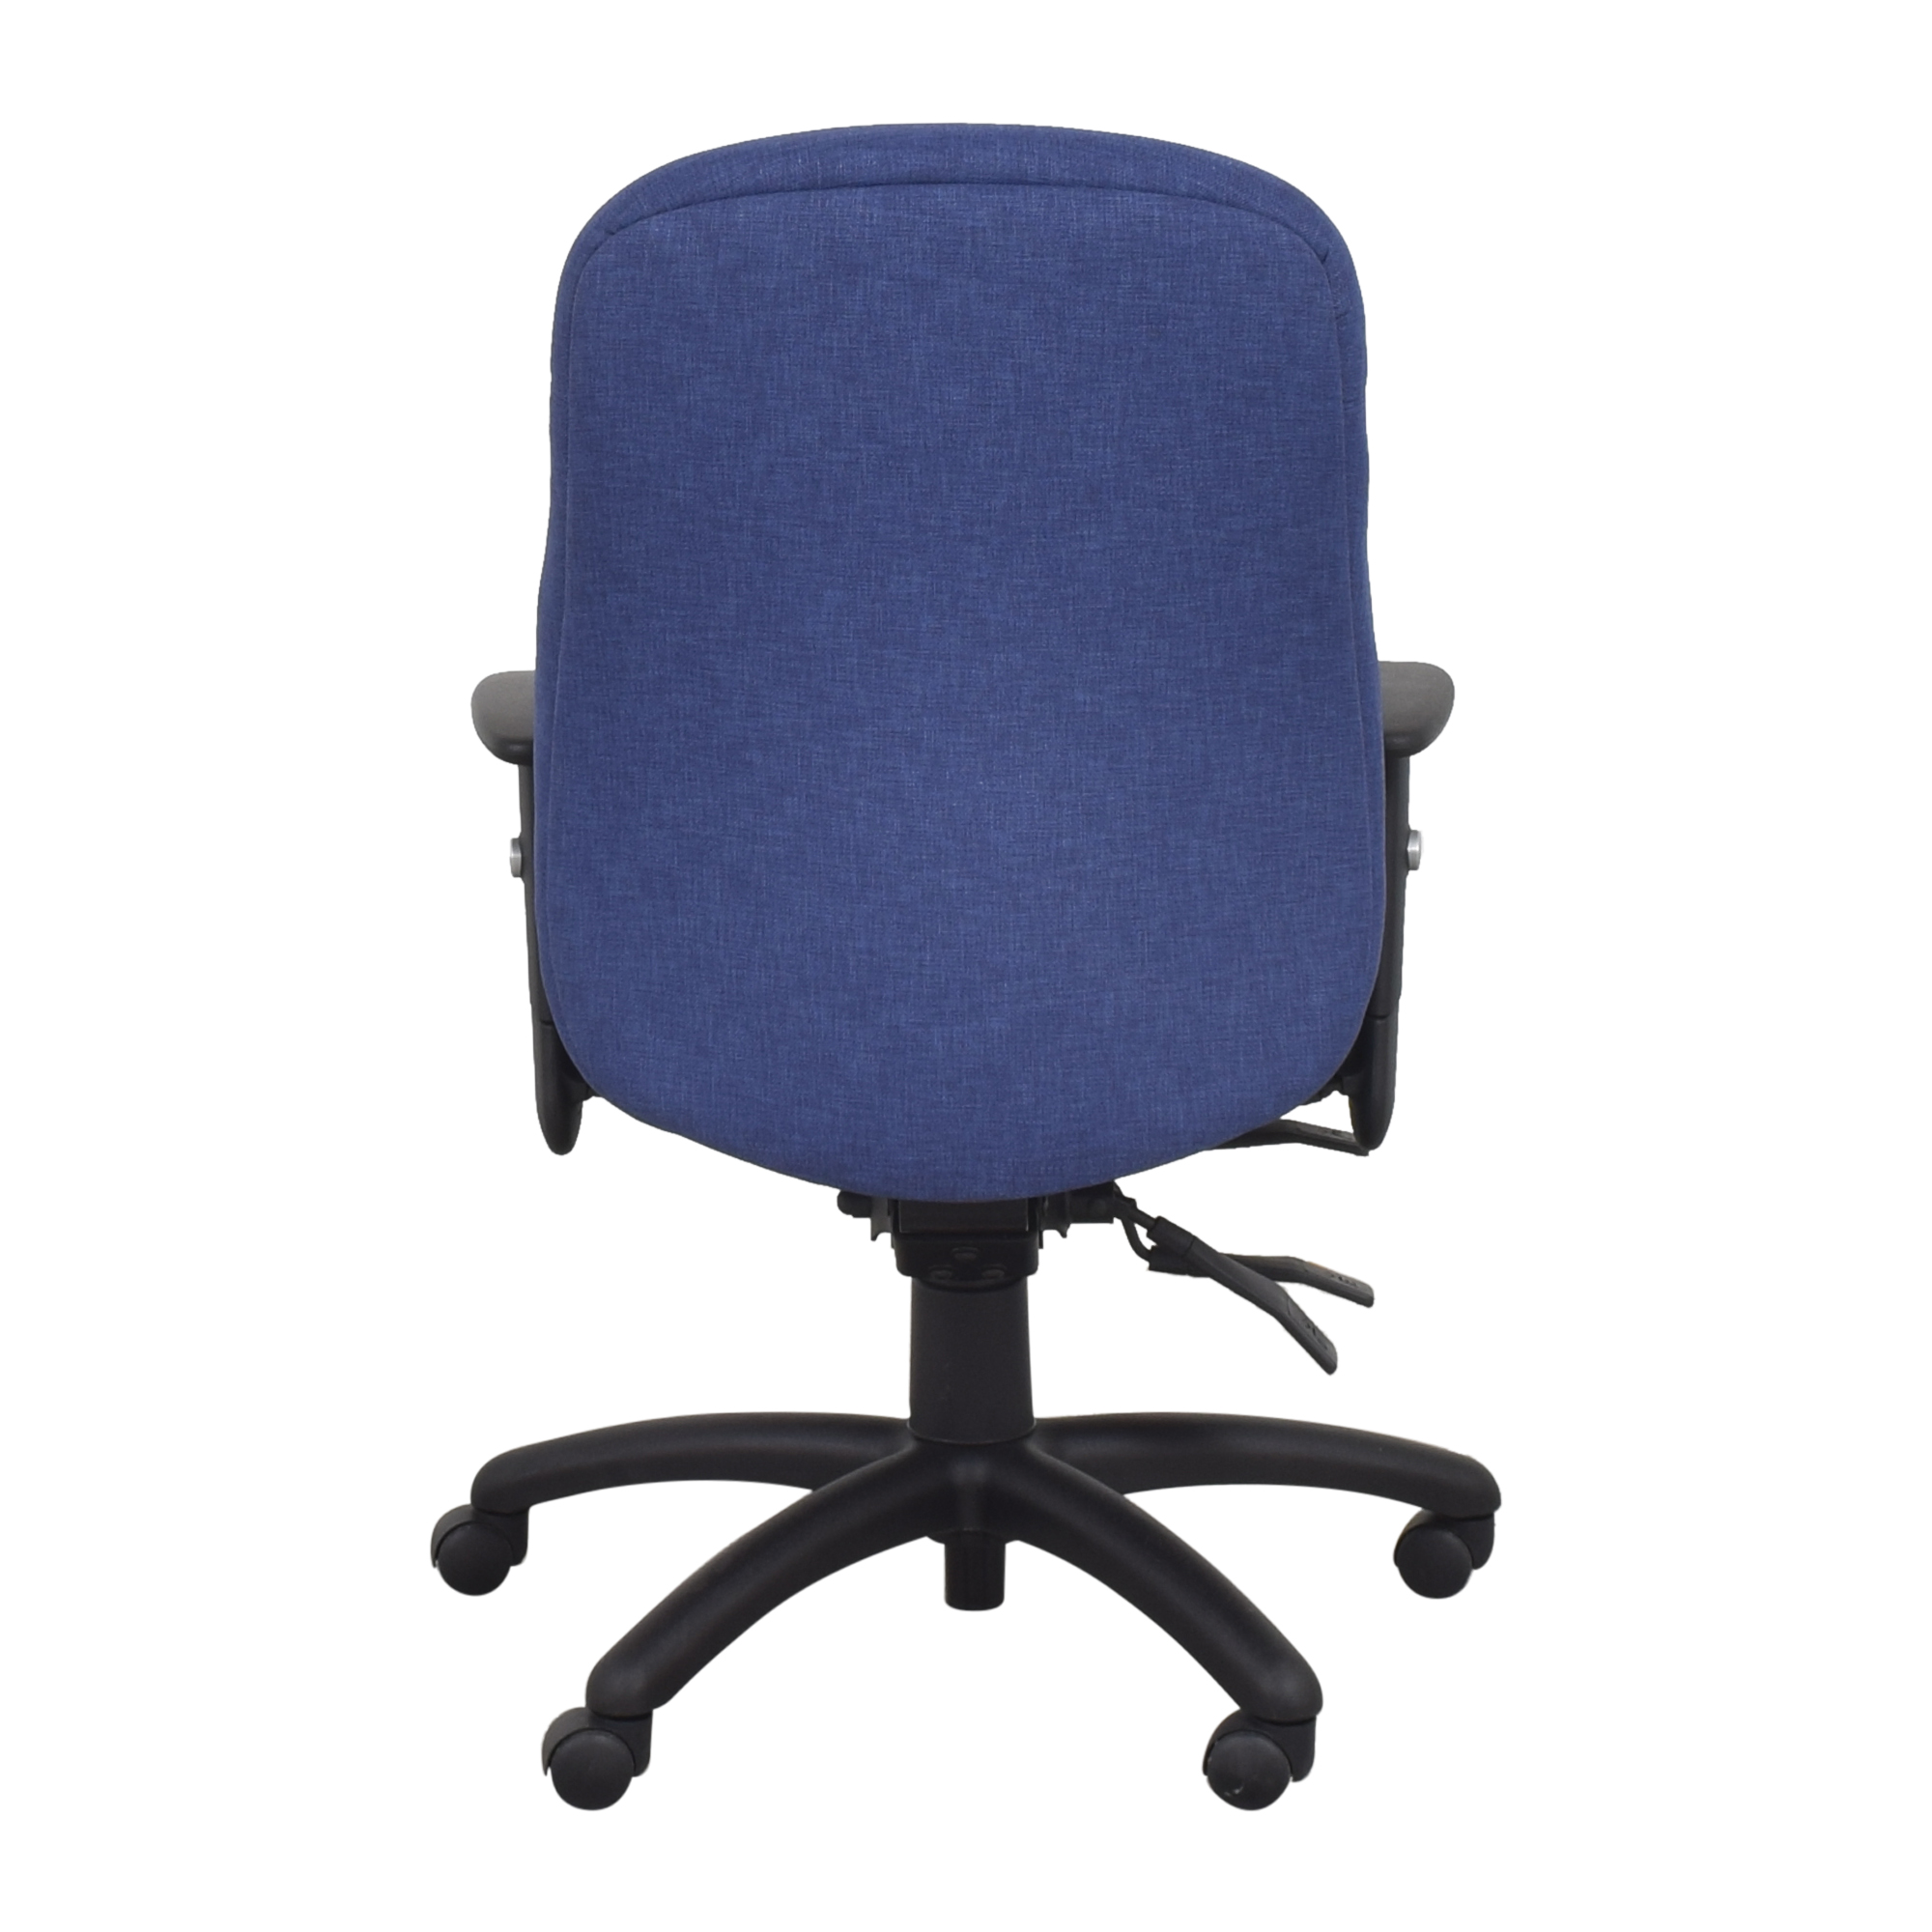 Offices to Go Offices to Go Multi-Function Desk Chair discount